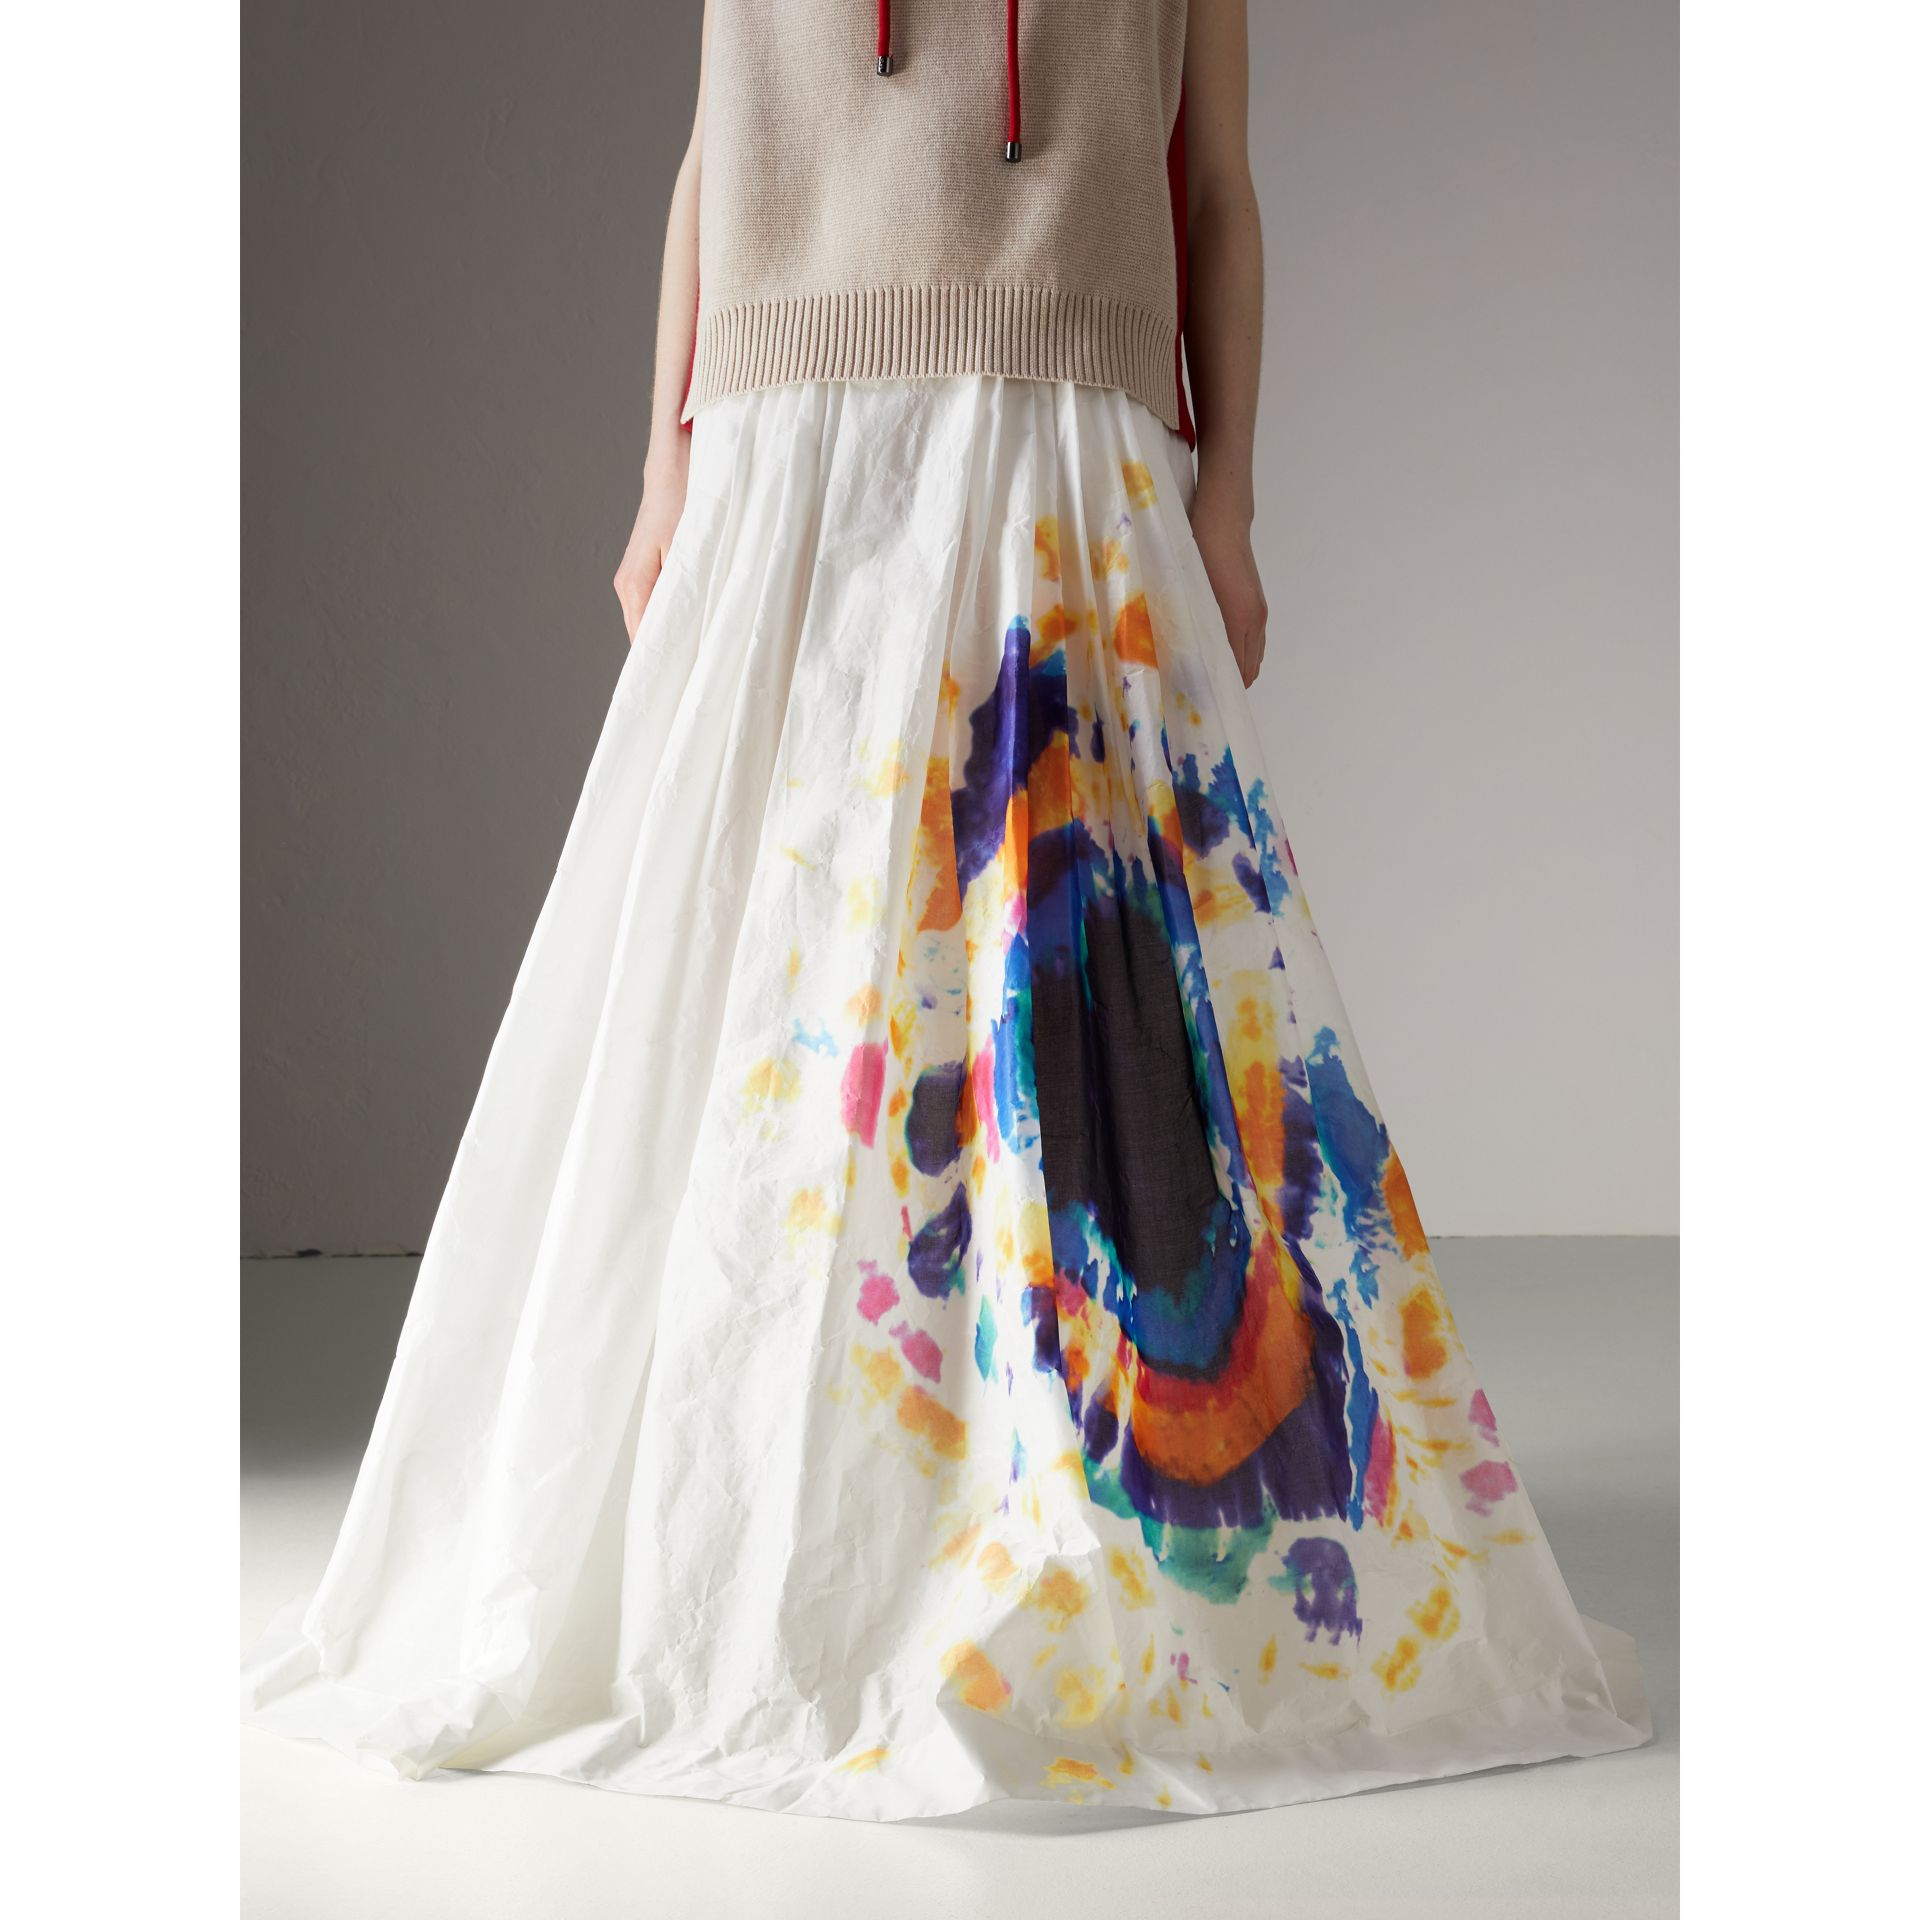 Tie-dye Print Maxi Skirt in Multi-bright Blue - Women | Burberry United Kingdom - gallery image 4